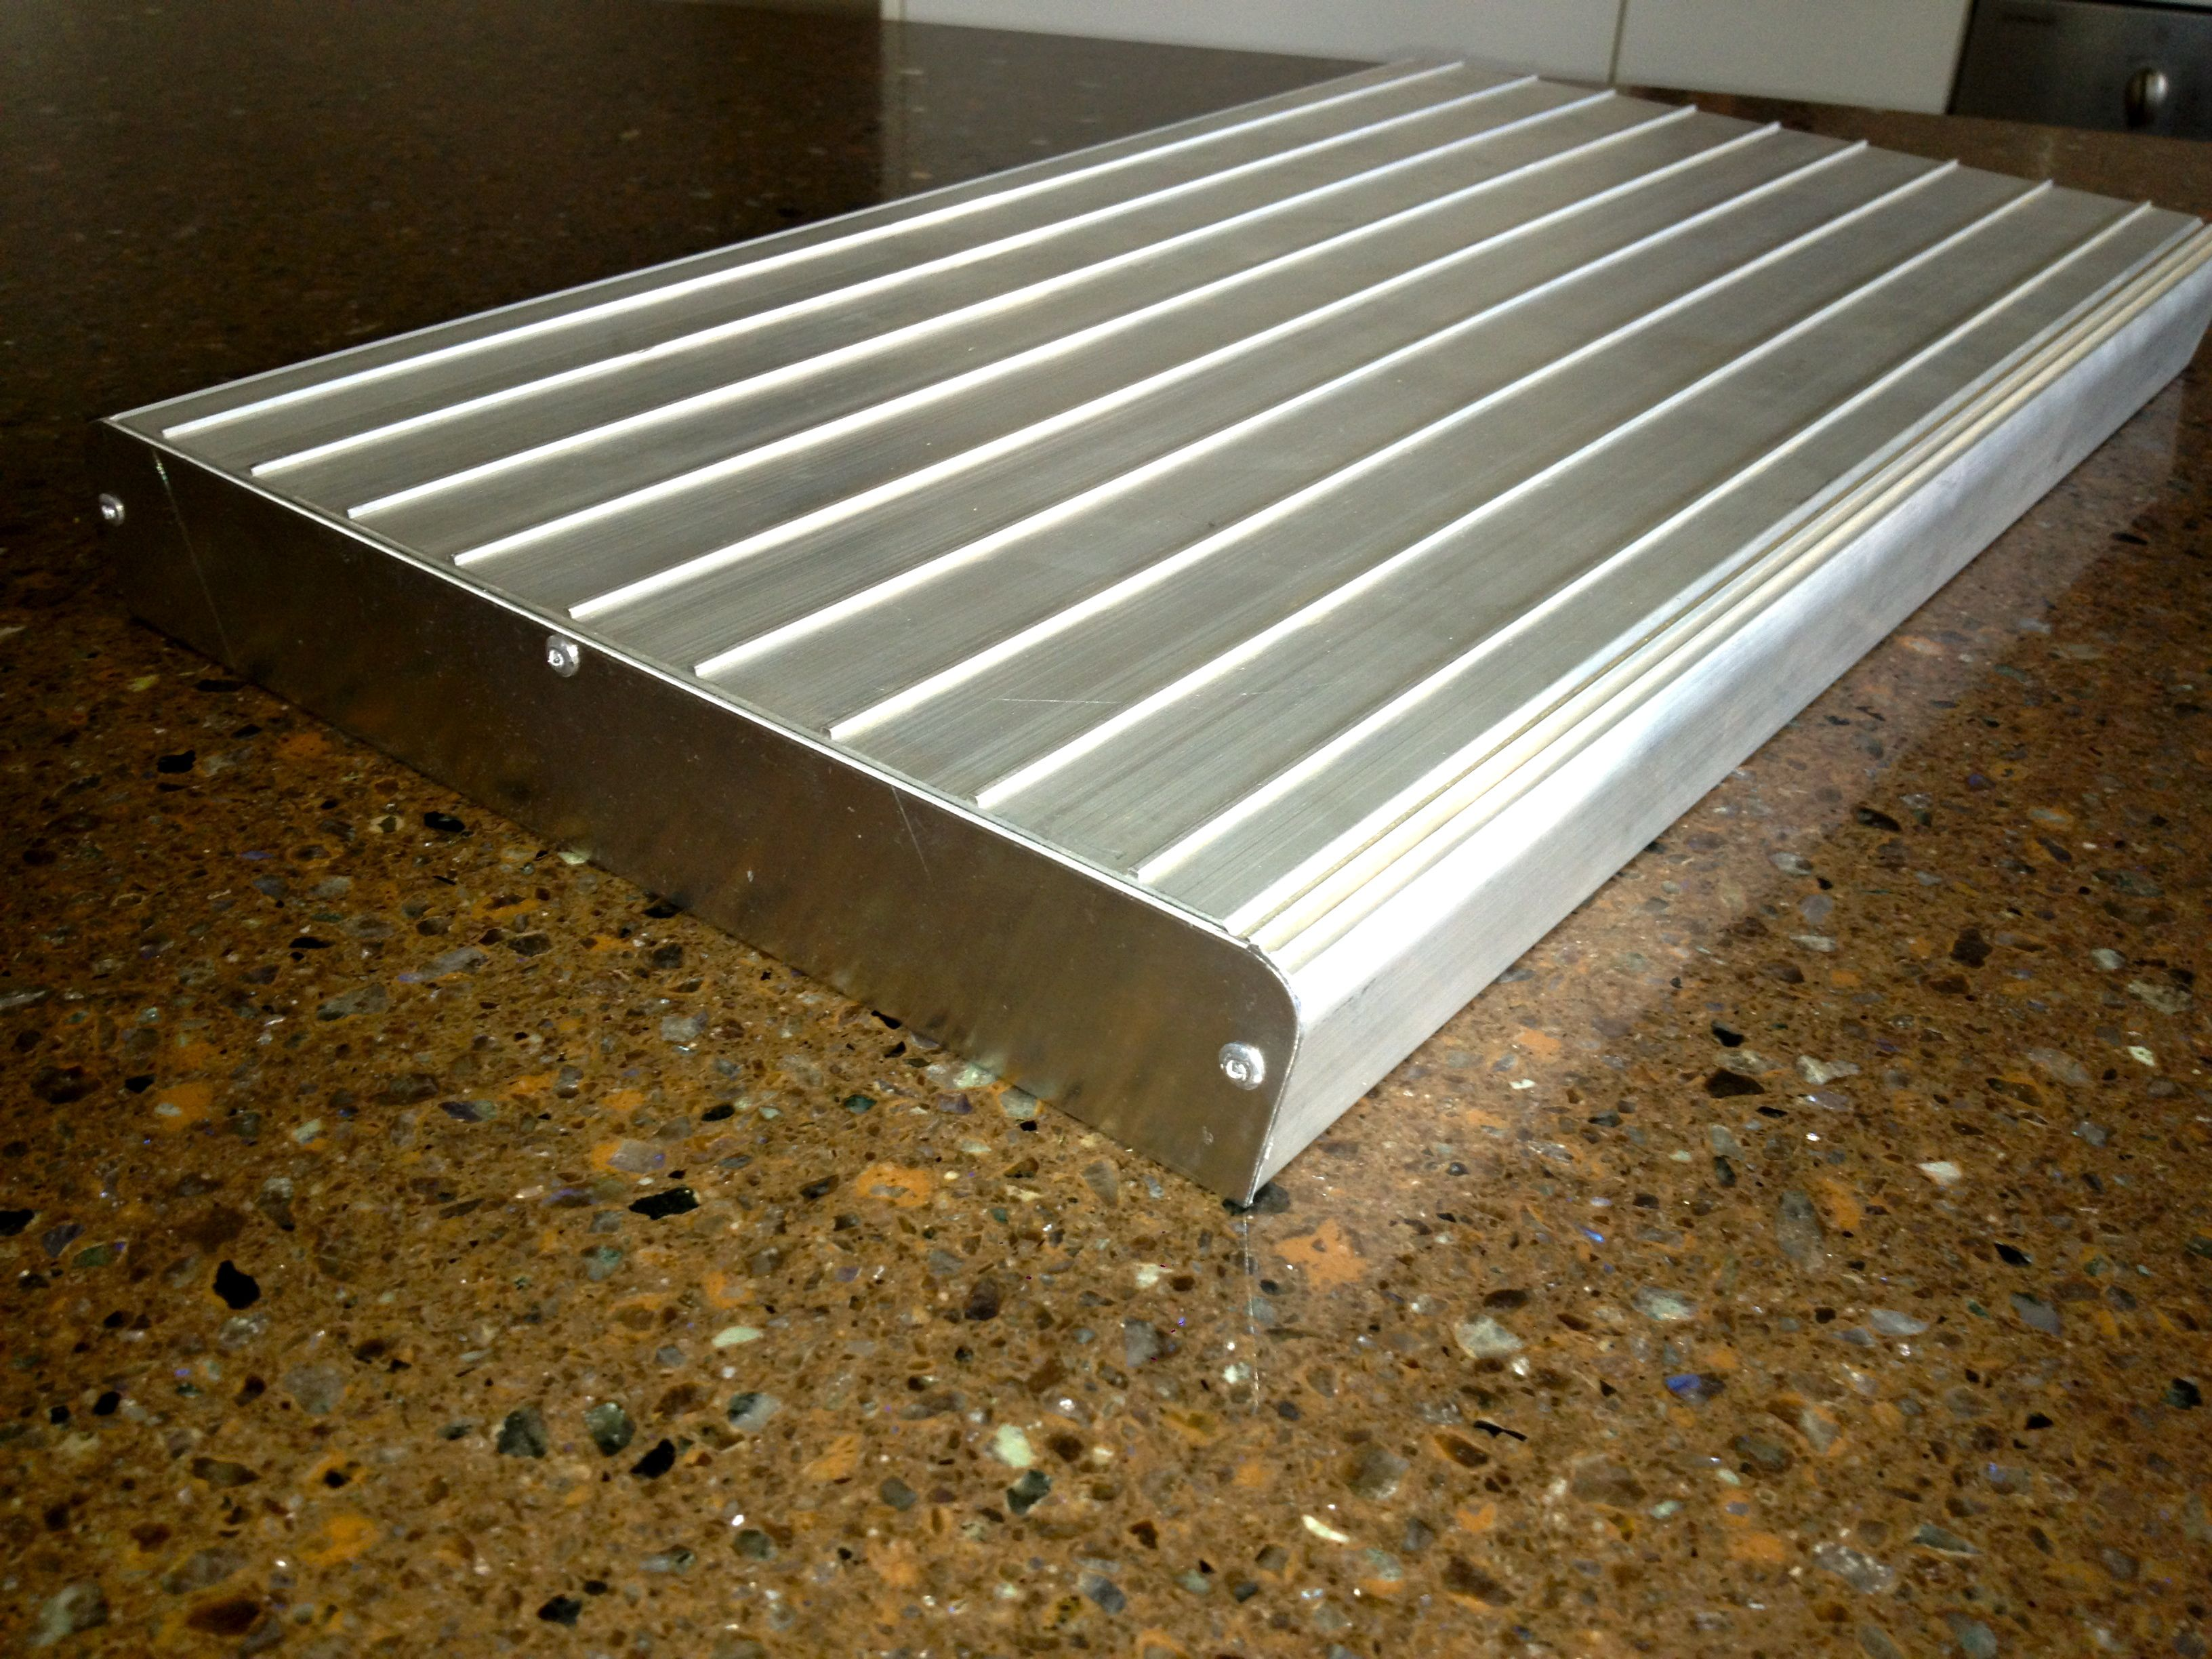 Aluminium Stair Treads Ipswich Area Steps Per Metre Miscellaneous Qld Ipswich 2620036